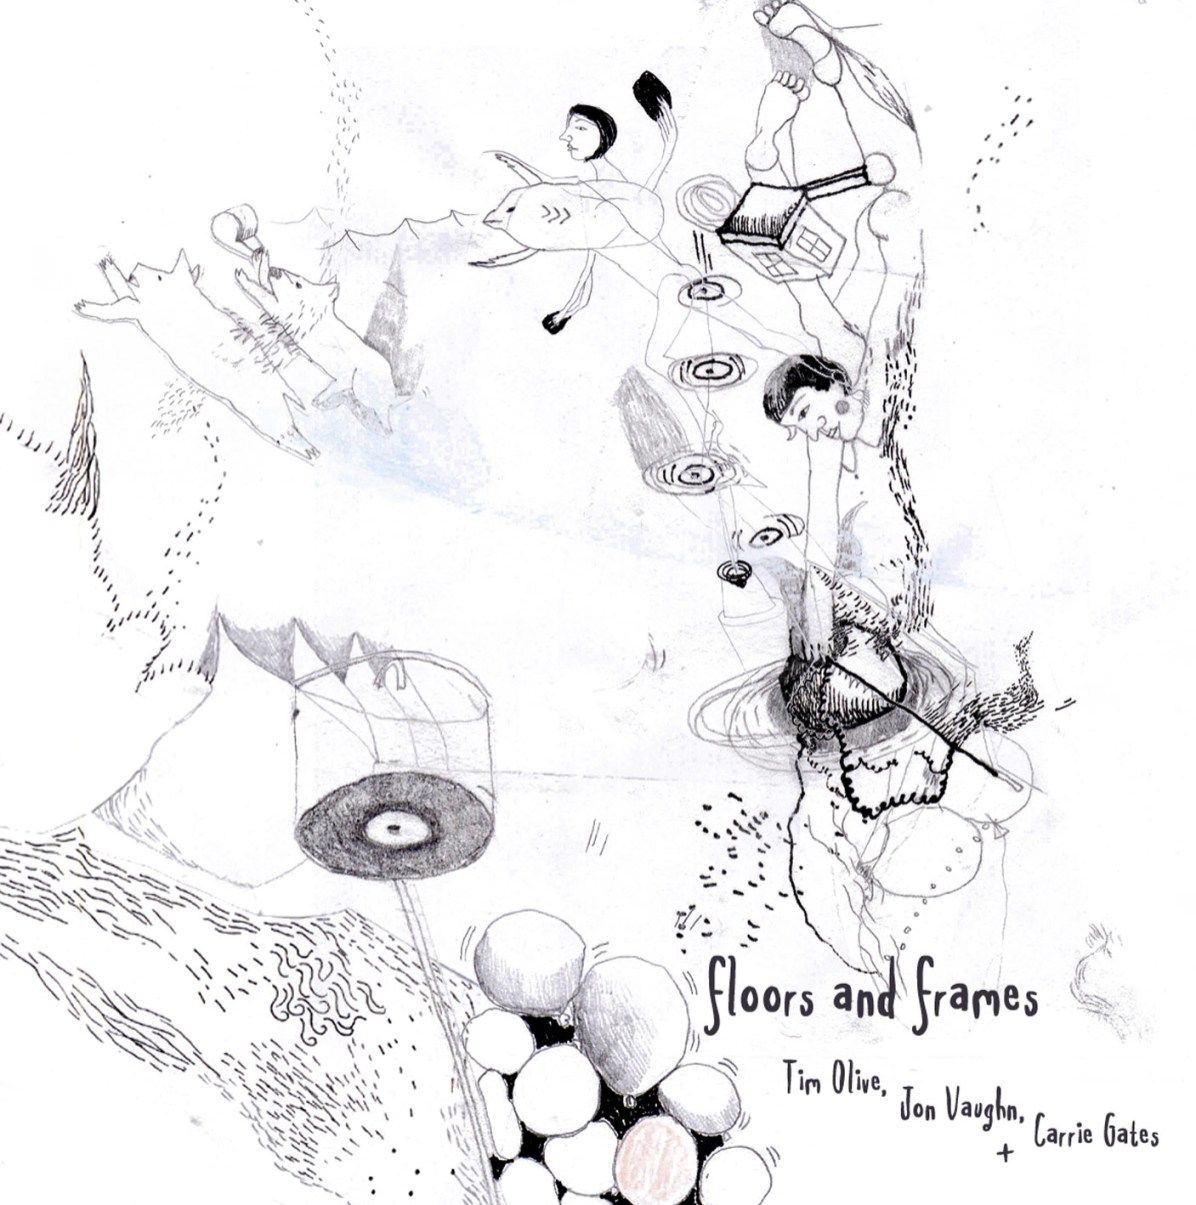 Floors and Frames - Tim Olive, Carrie Gates, and Jon Vaughn - BricoLodge Release 002 - Artwork by Tamara Bond